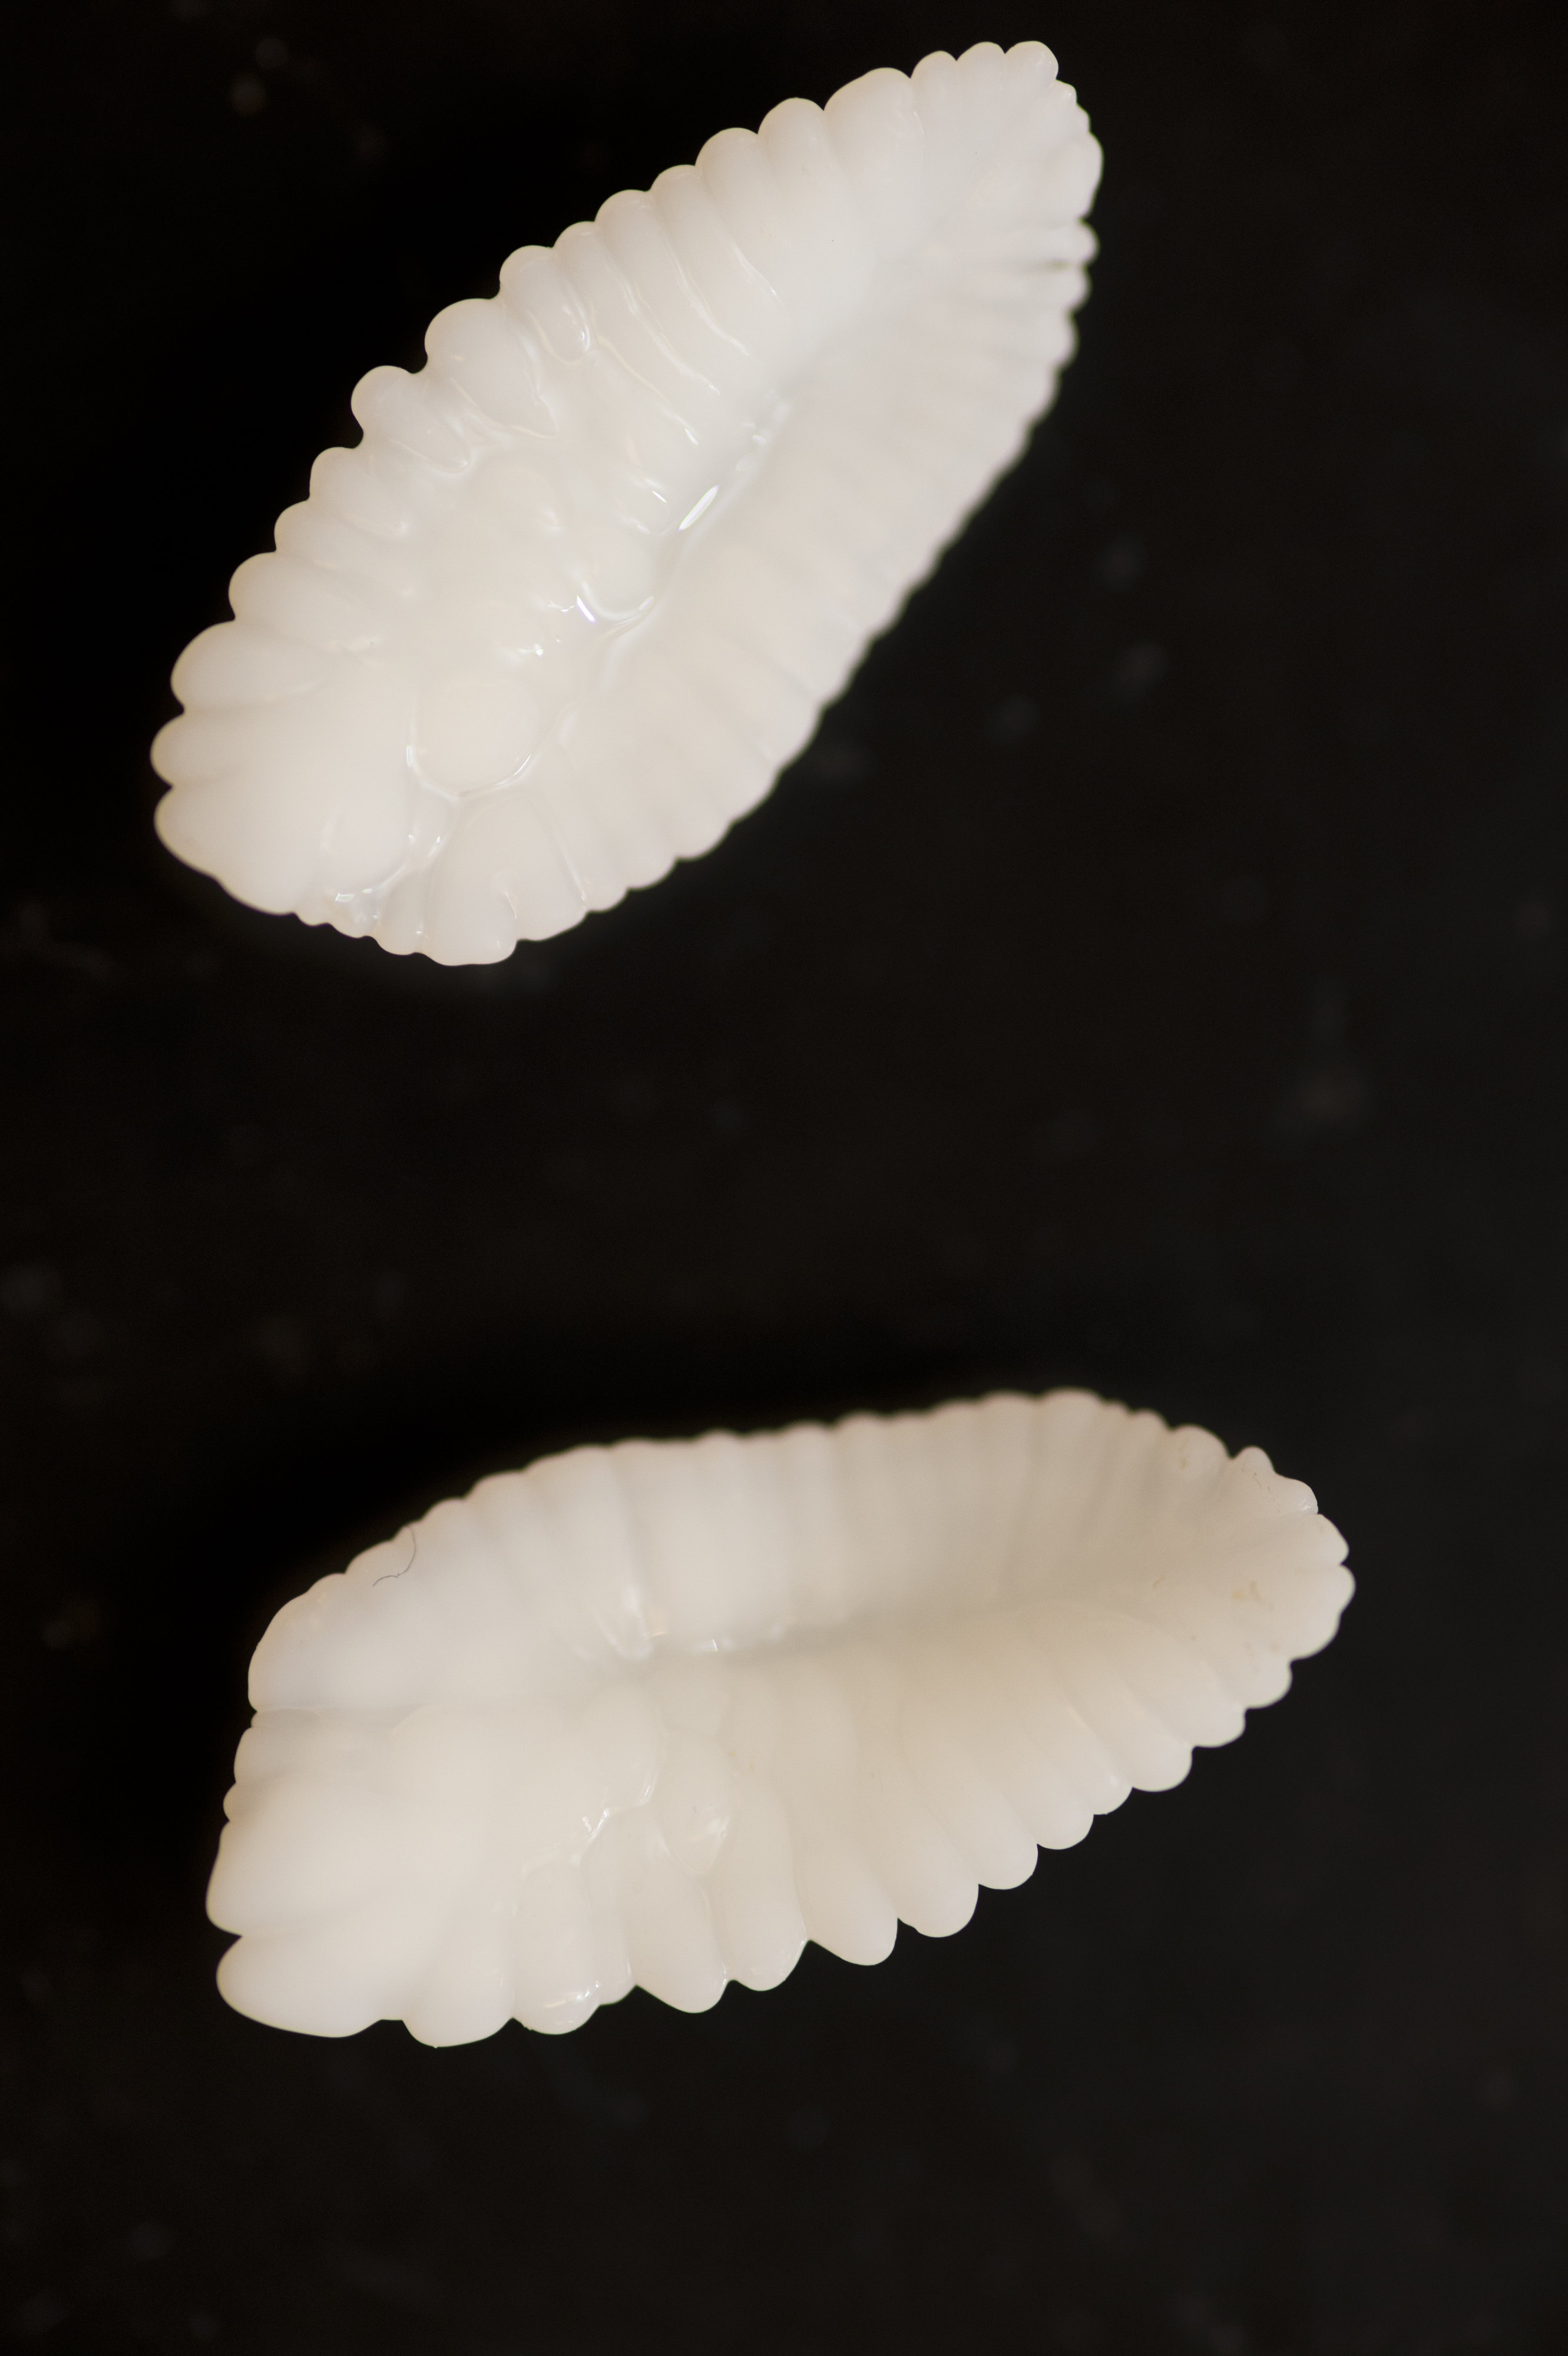 Atlantic Cod otoliths